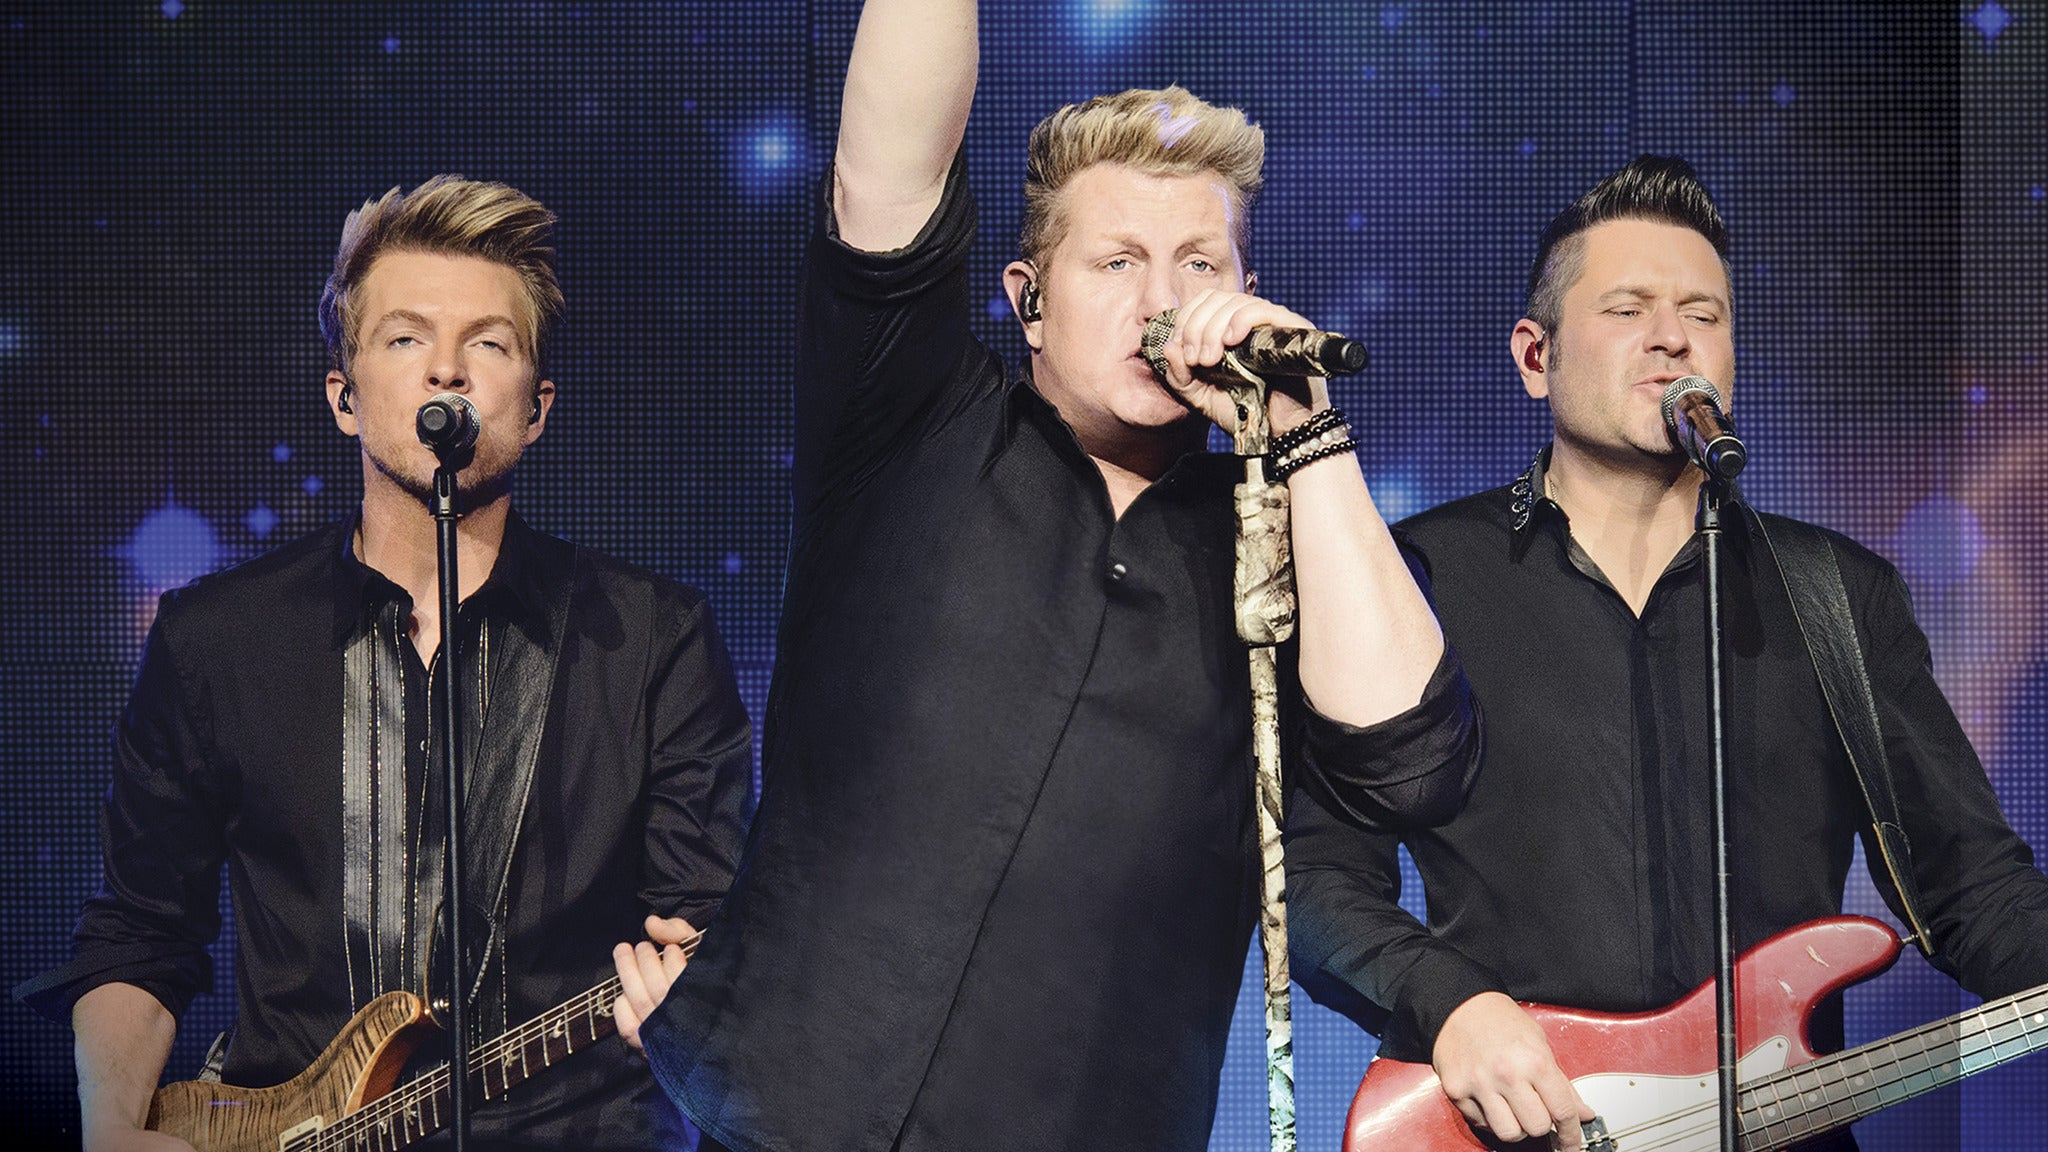 Rascal Flatts - Rhythm & Roots Tour at PNC Bank Arts Center